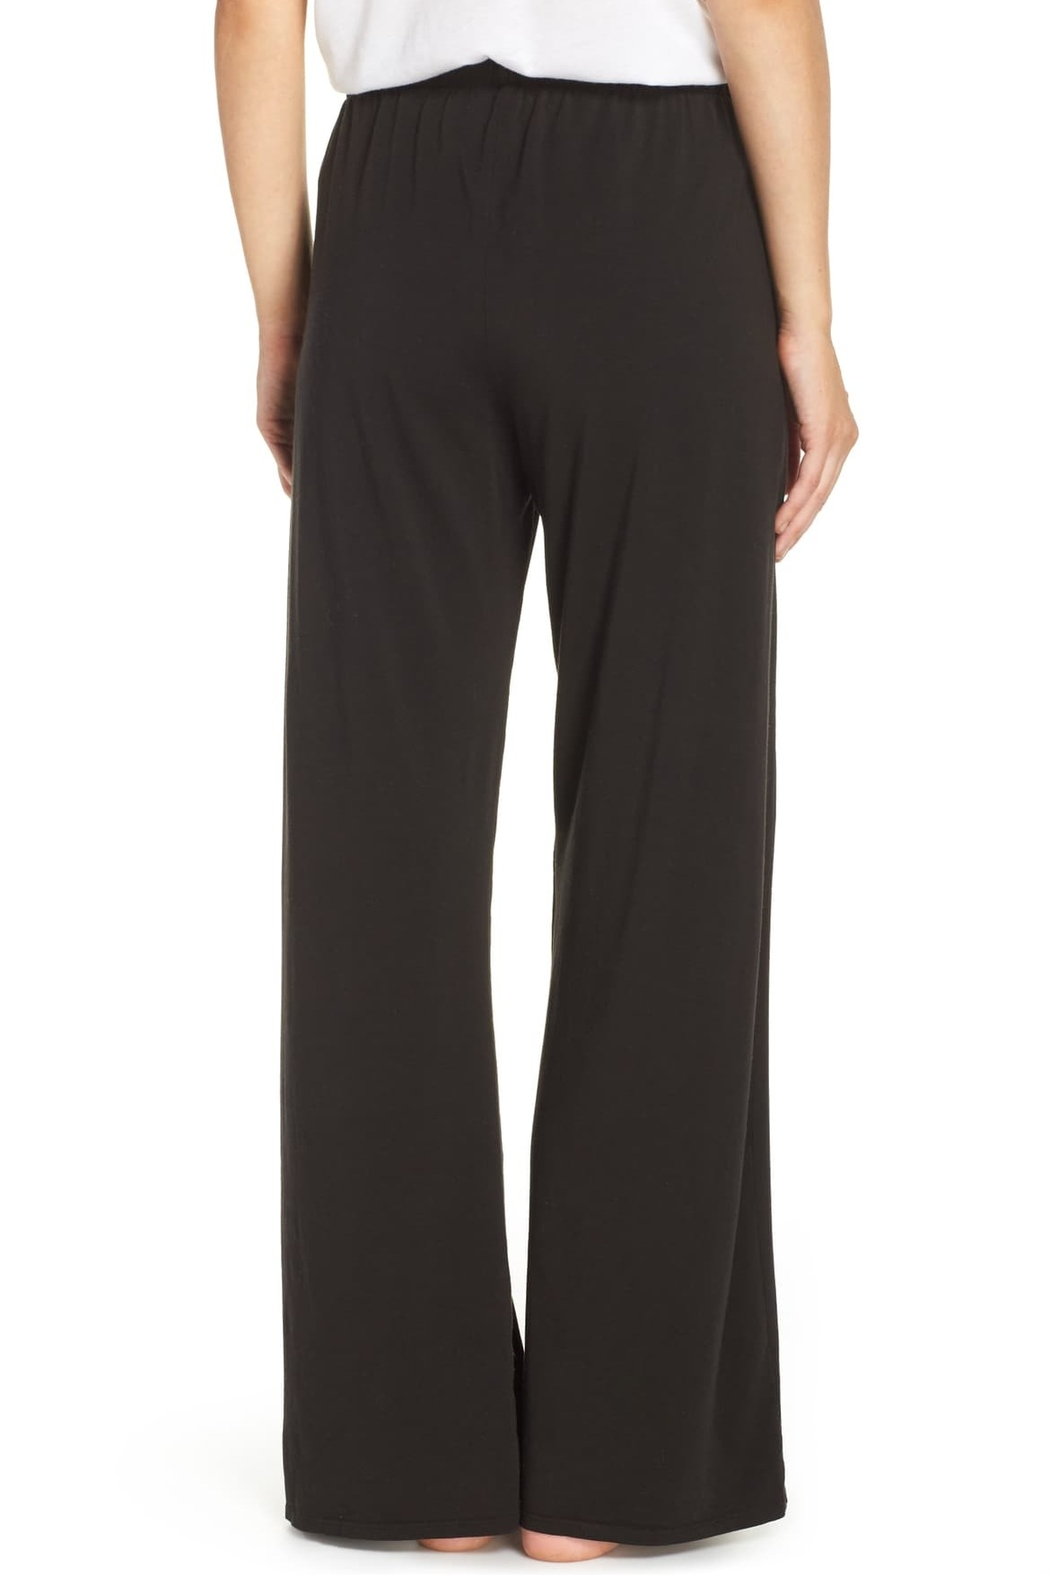 Groceries Apparel Winslet Pajama Pant - Front Full Image